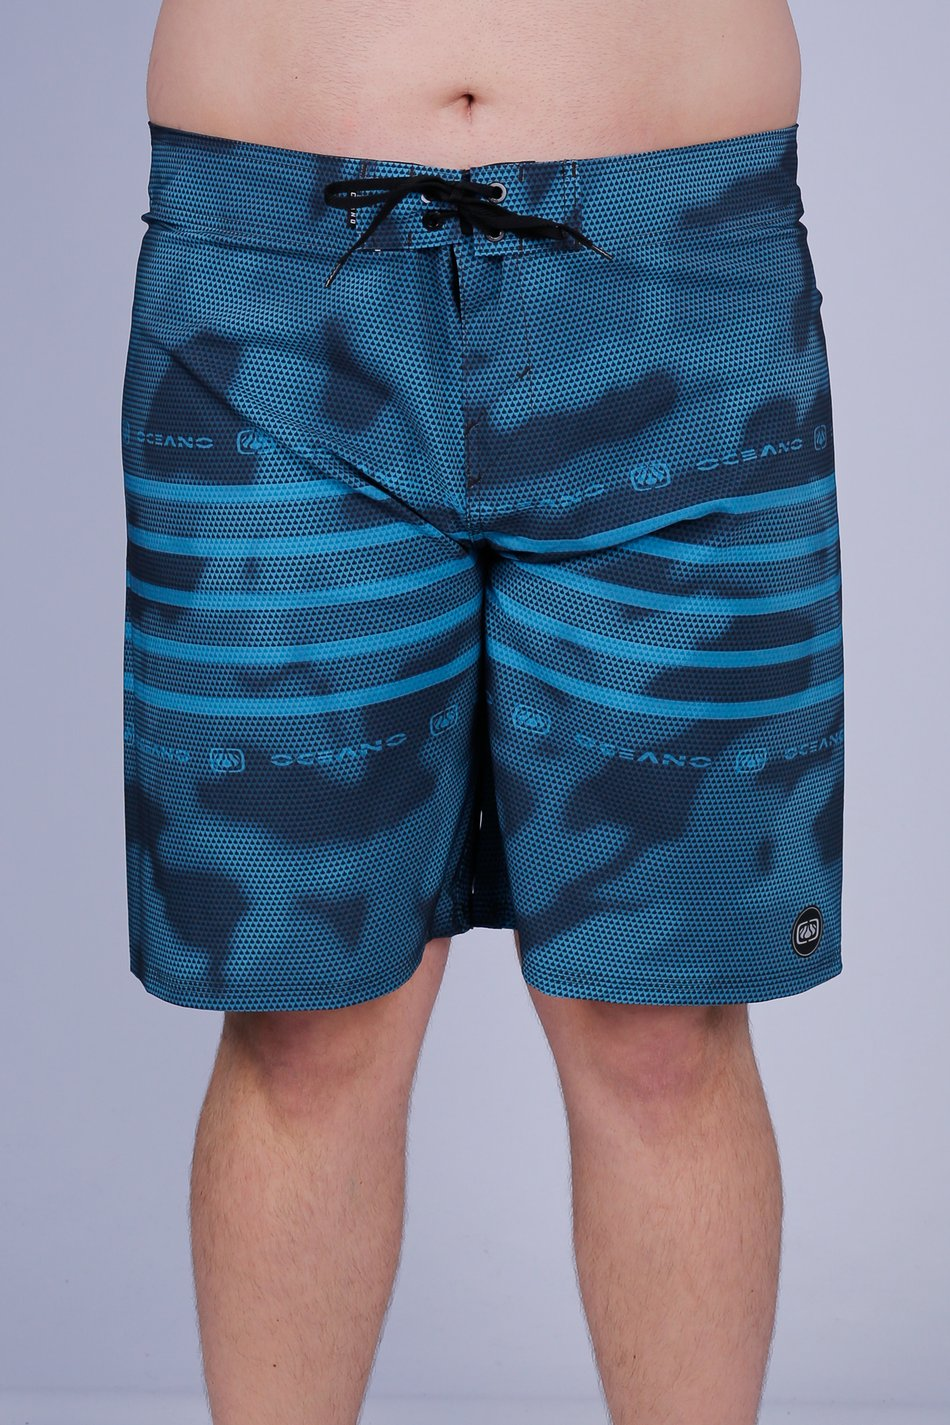 BOARDSHORT OCEANO CAMUFLA PERFORM PLUS